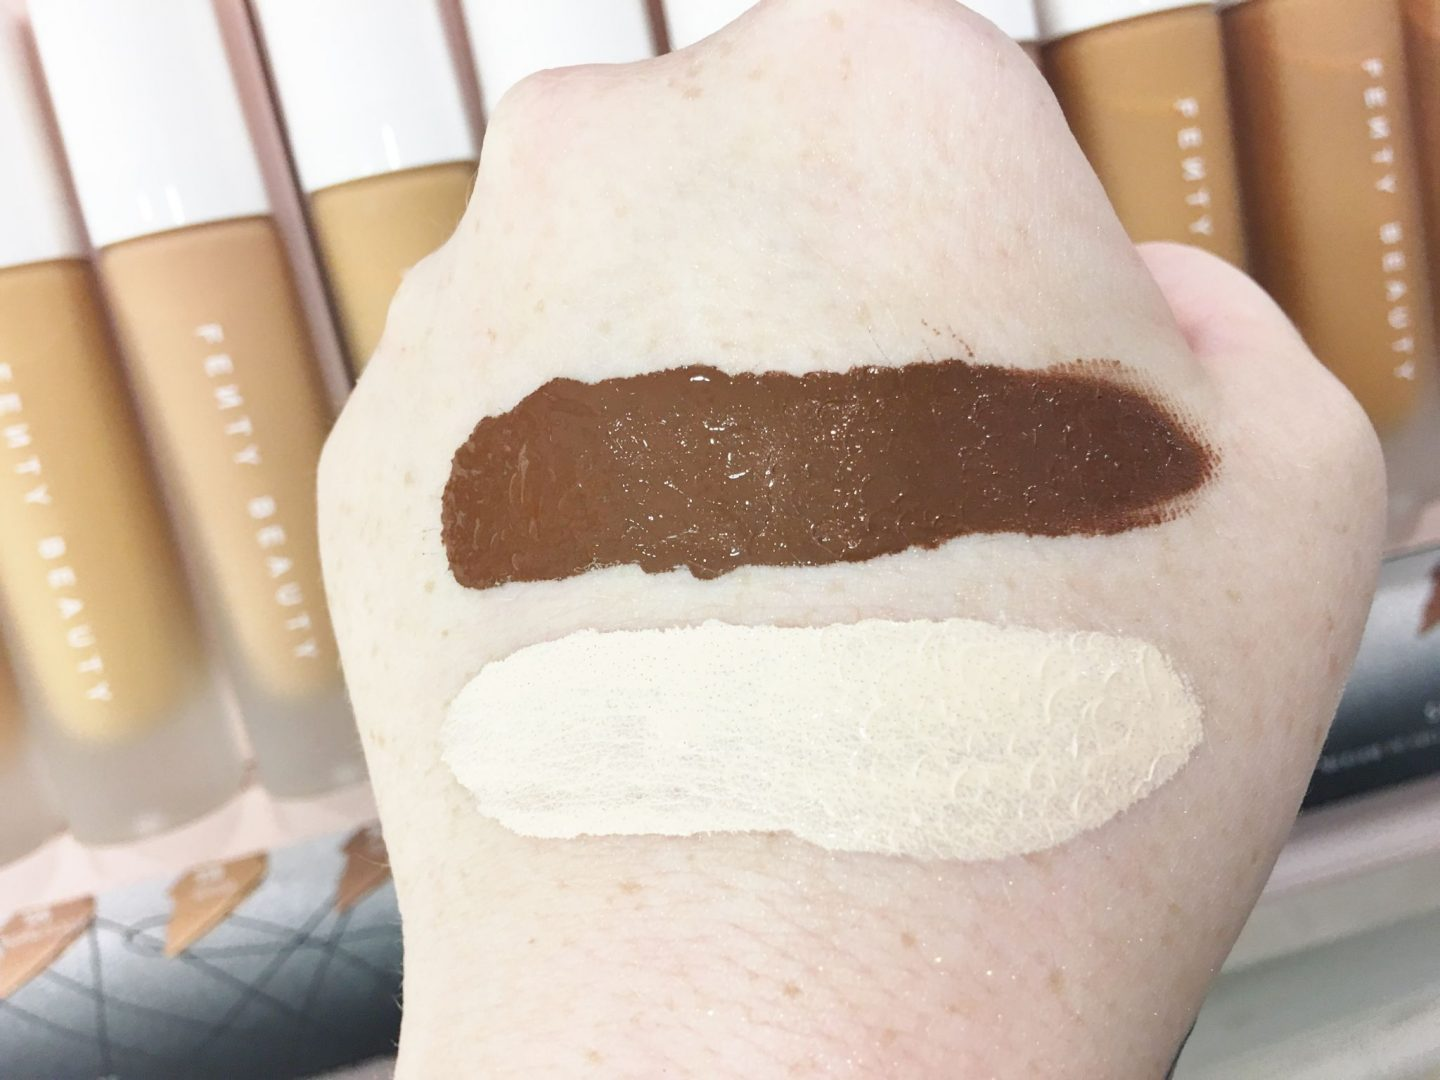 Pro Filt'r Soft Matte Longwear Foundation shade swatches